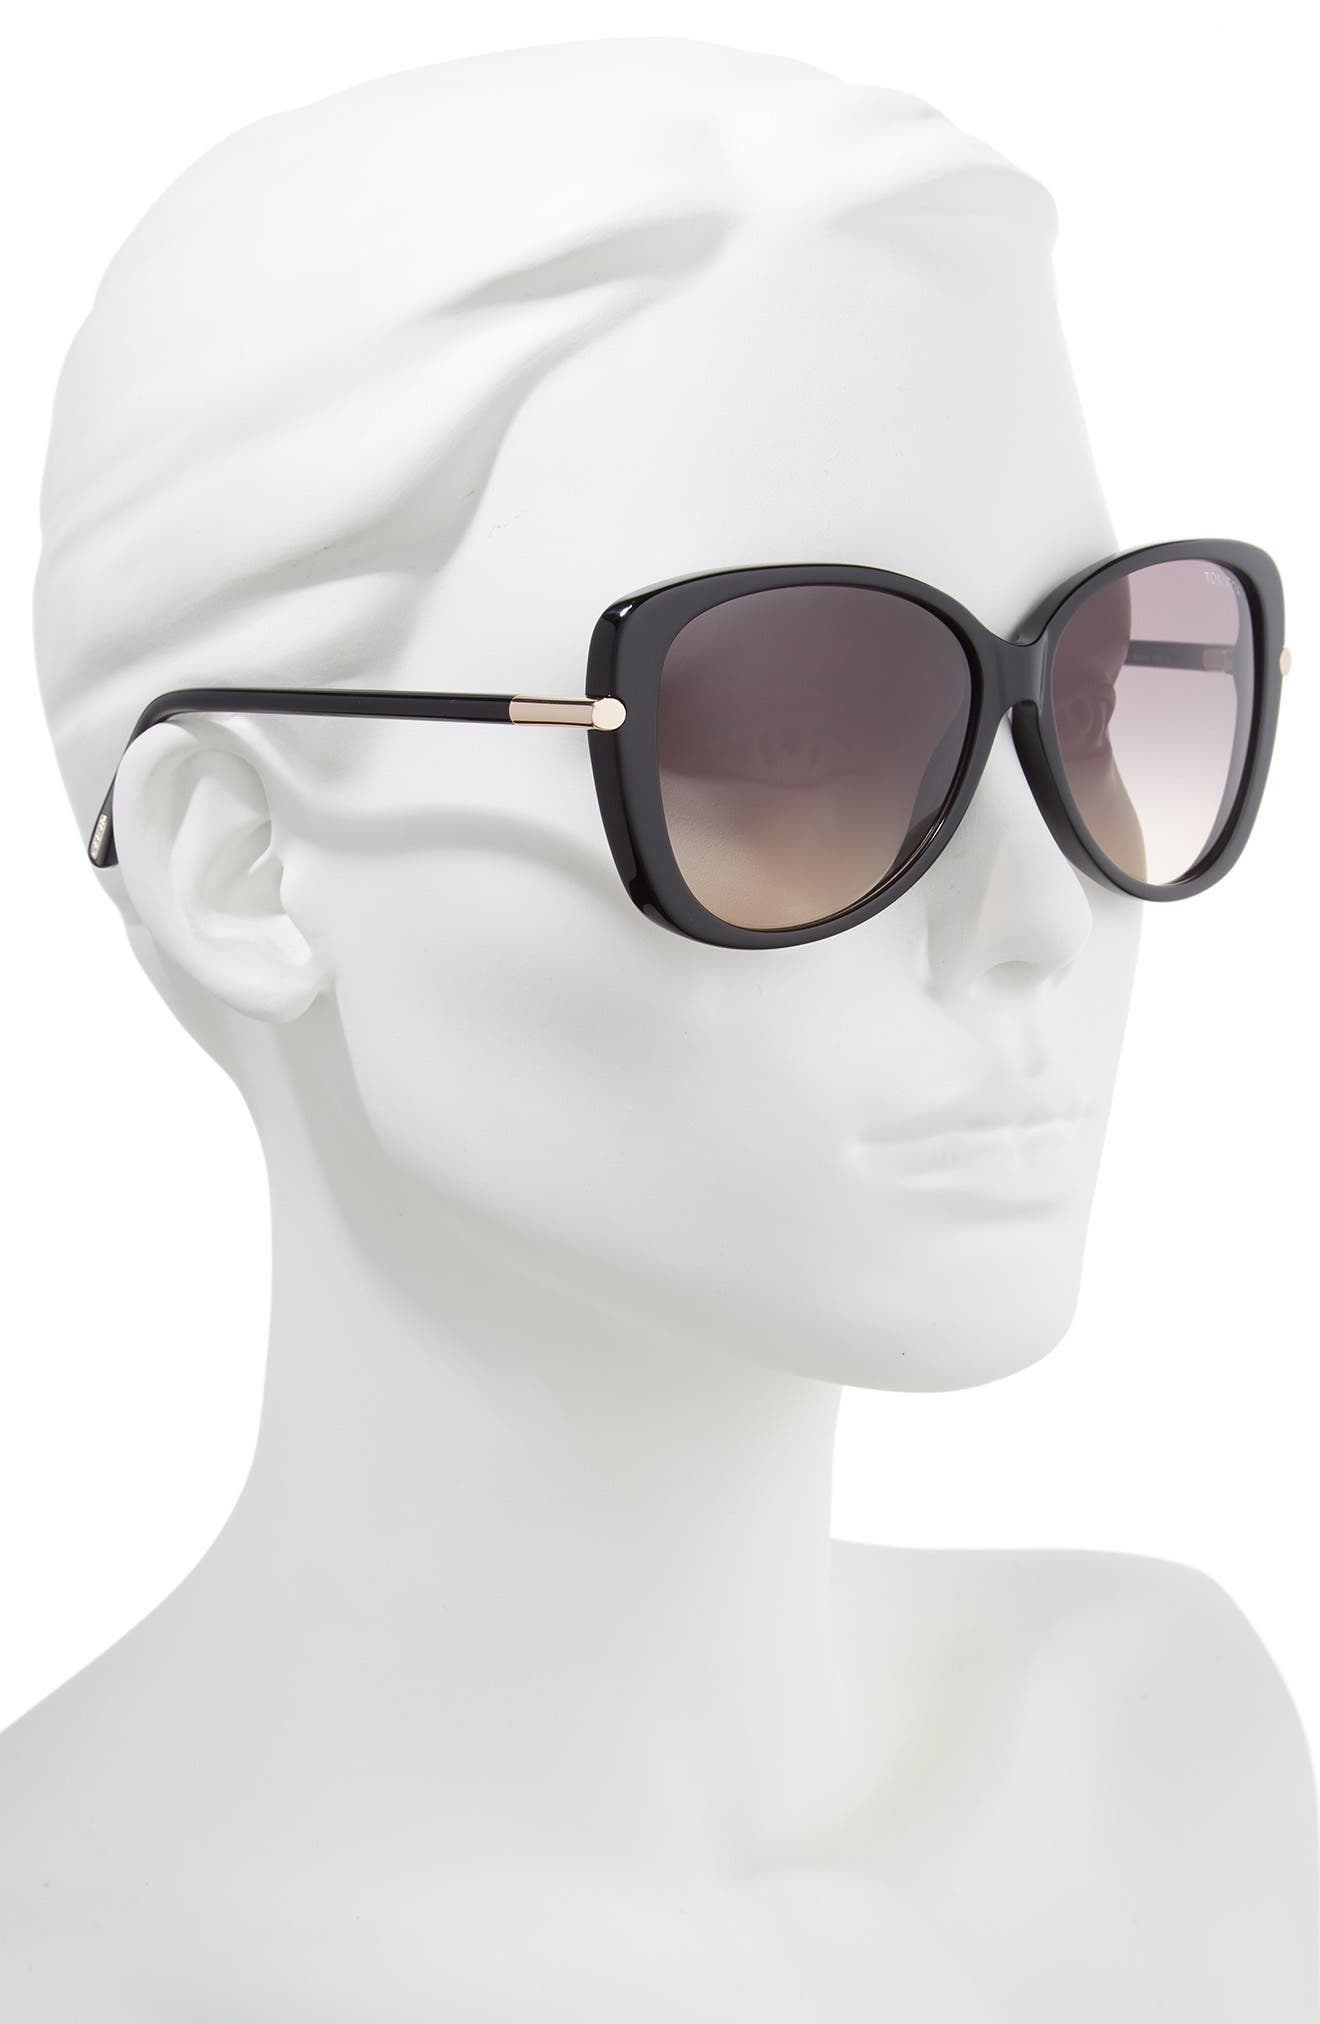 'Linda' 59mm Sunglasses,                             Alternate thumbnail 3, color,                             SHINY BLACK